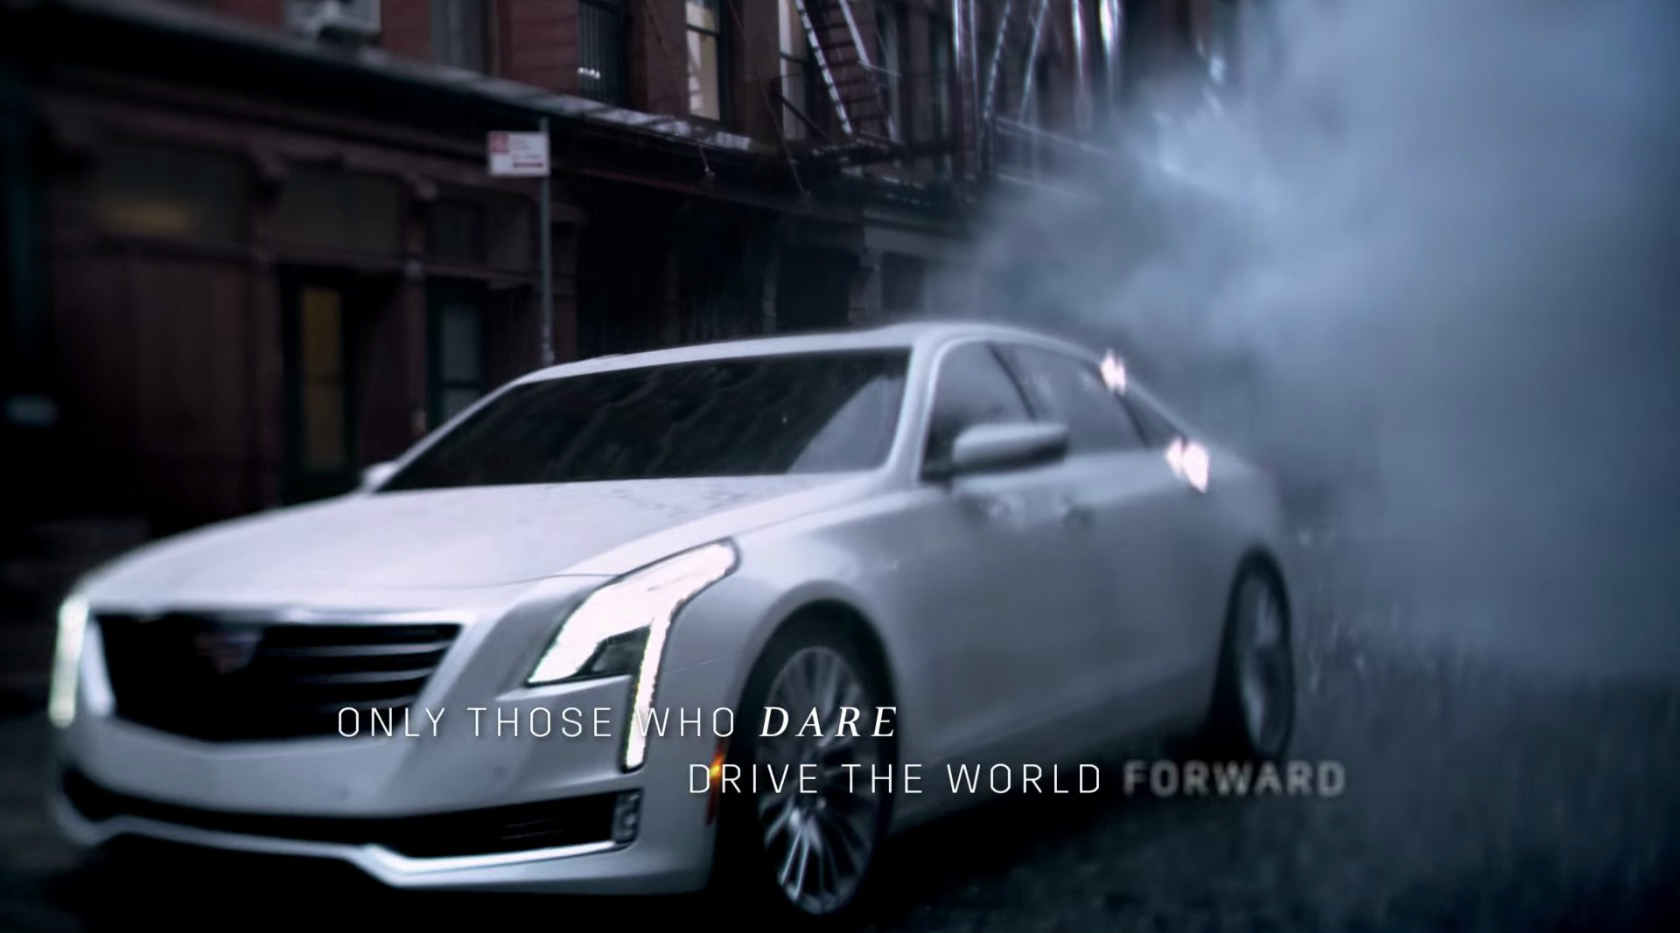 2016 Cadillac CT6 Sedan Revealed In Oscars Ad, Wants Us To